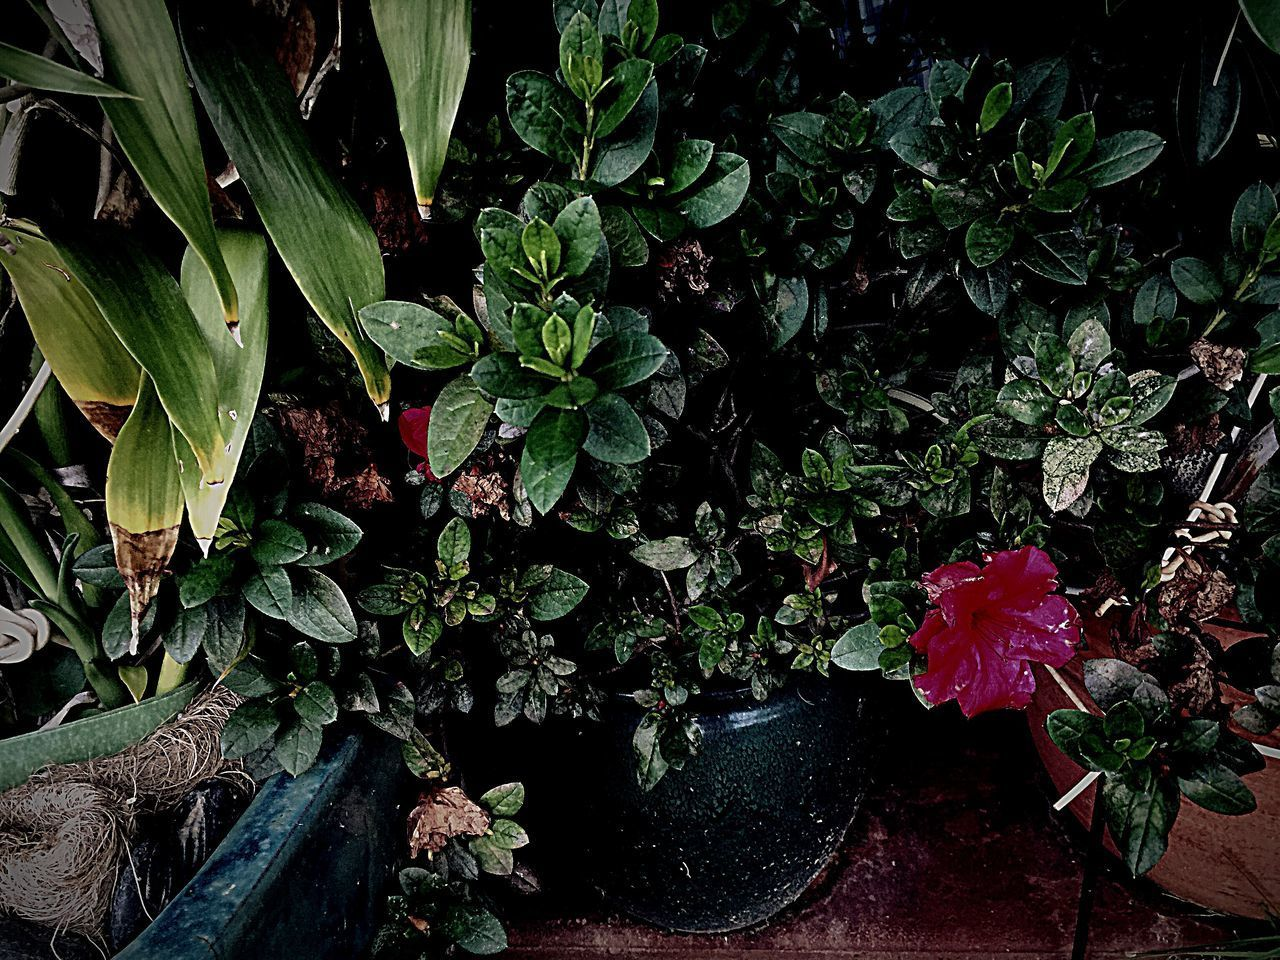 plant, growth, beauty in nature, plant part, leaf, flower, nature, flowering plant, green color, no people, freshness, high angle view, fragility, vulnerability, day, outdoors, potted plant, tranquility, flower head, close-up